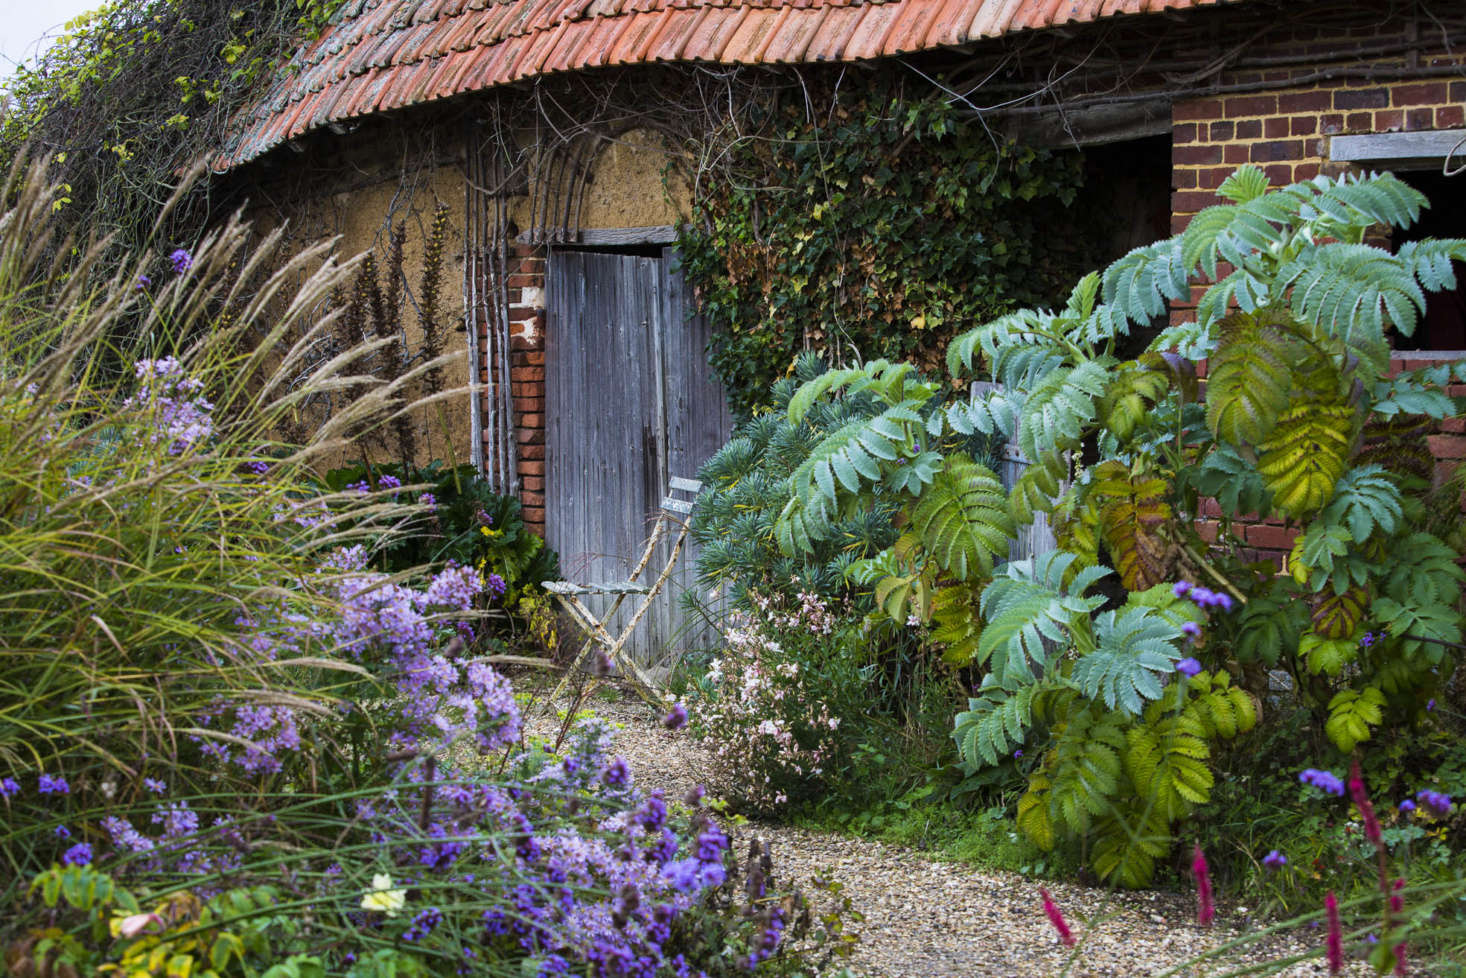 Informal planting around the old barns, including euphorbia and Melianthus major.